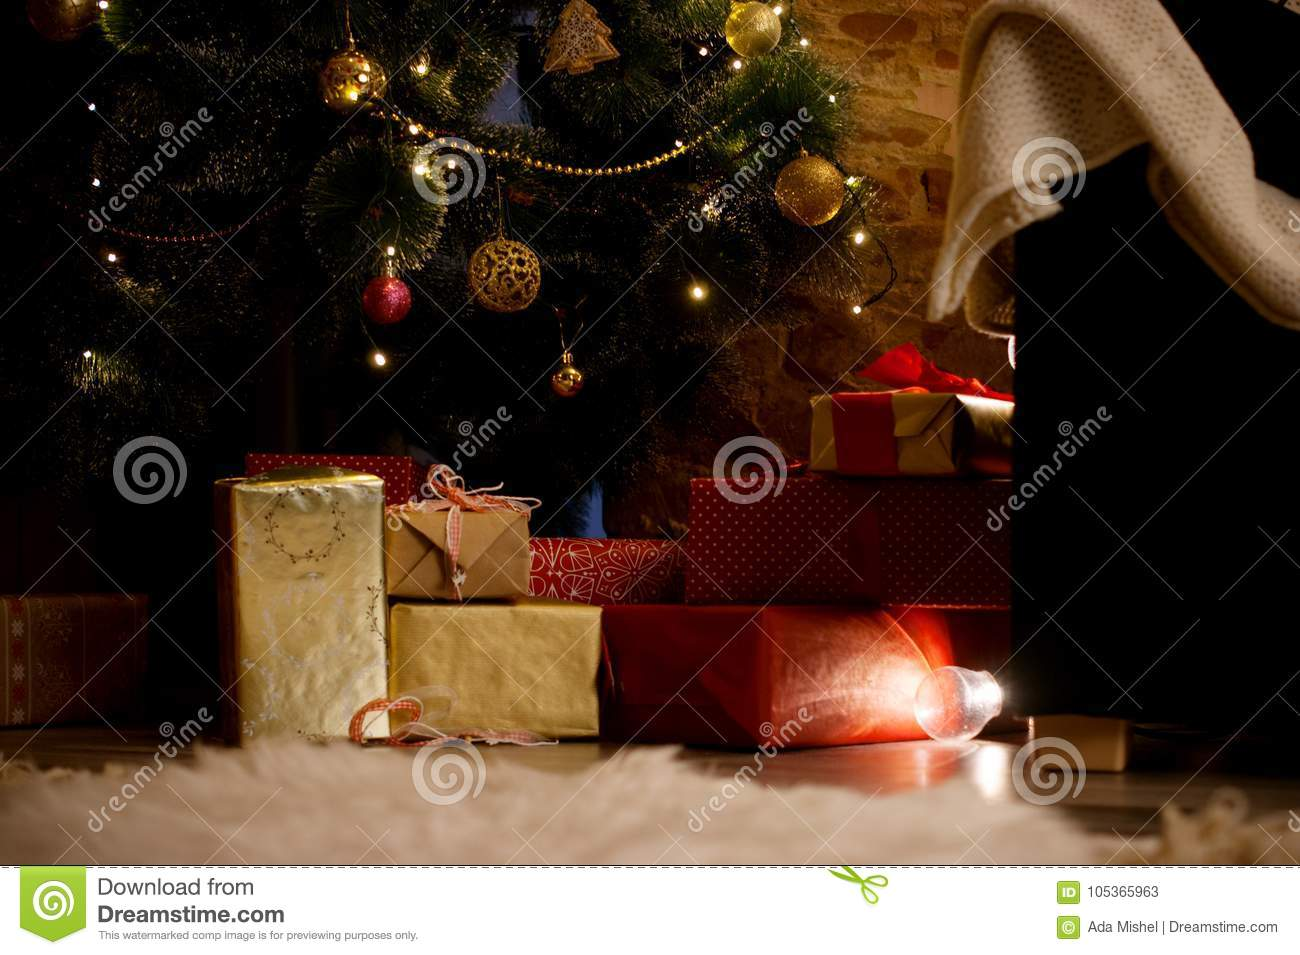 Christmas Gifts Under The Tree Stock Image - Image of package, home ...